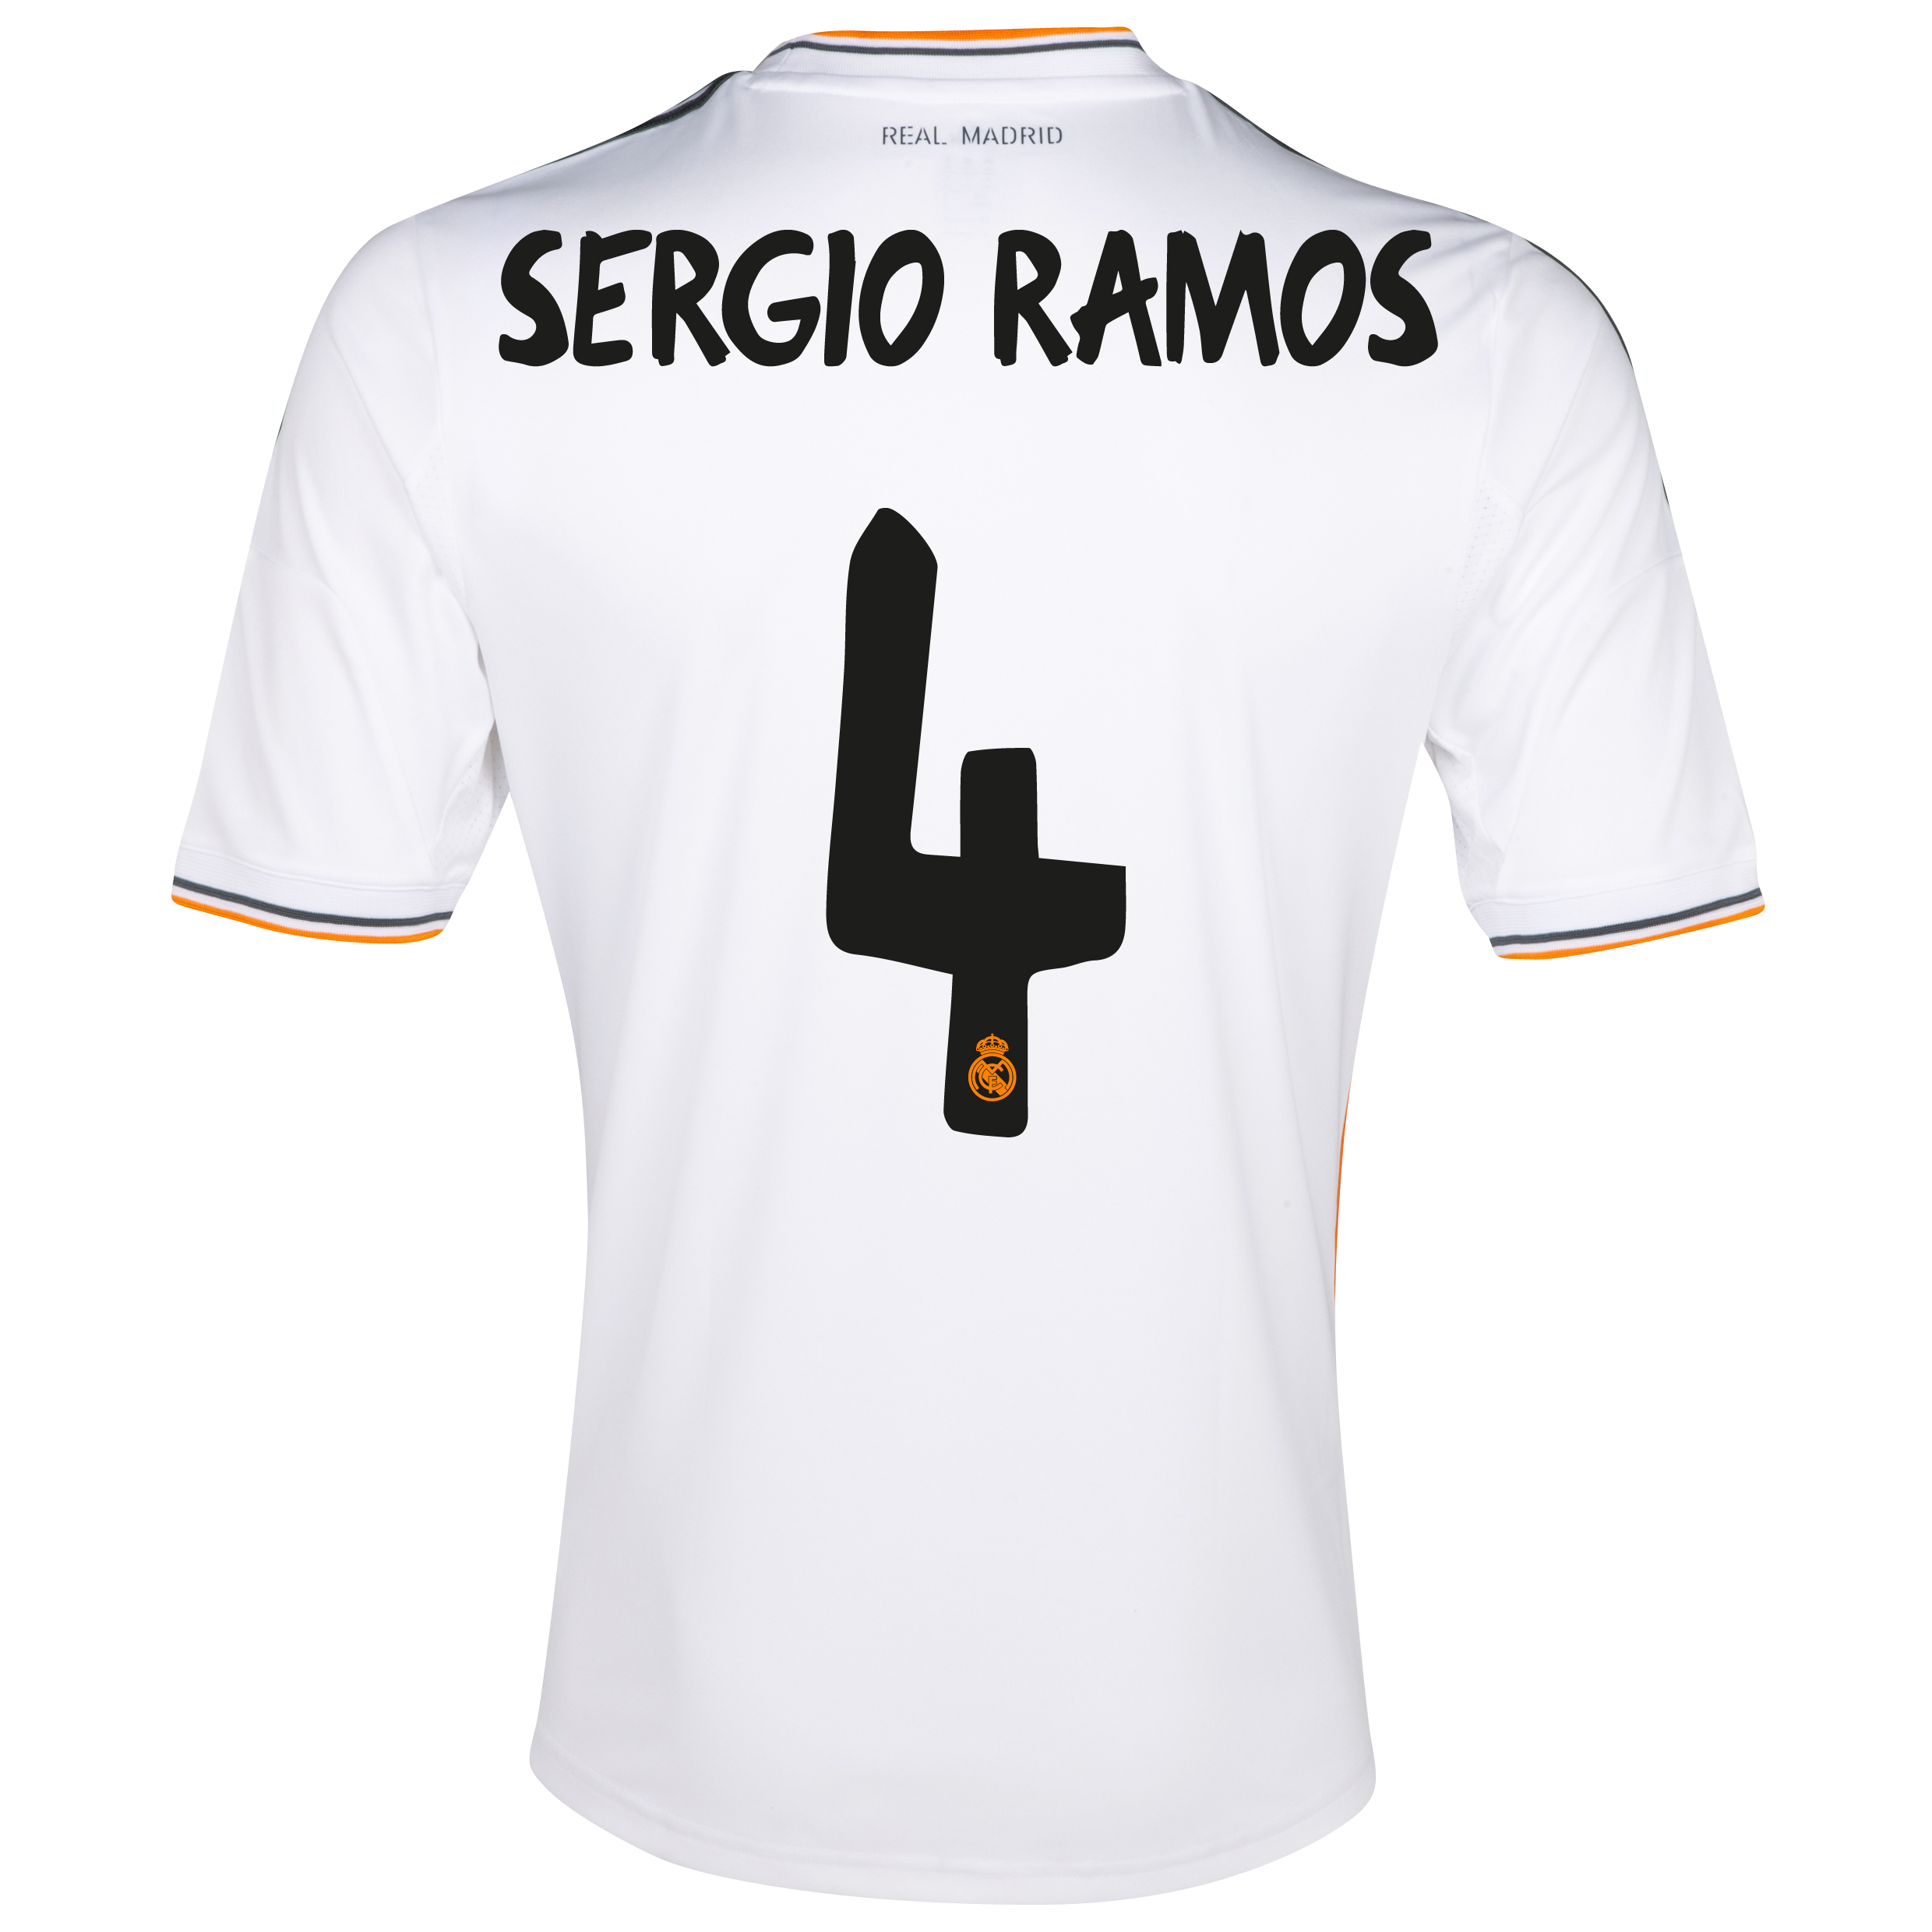 Real Madrid Home Shirt 2013/14 with Sergio Ramos 4 printing